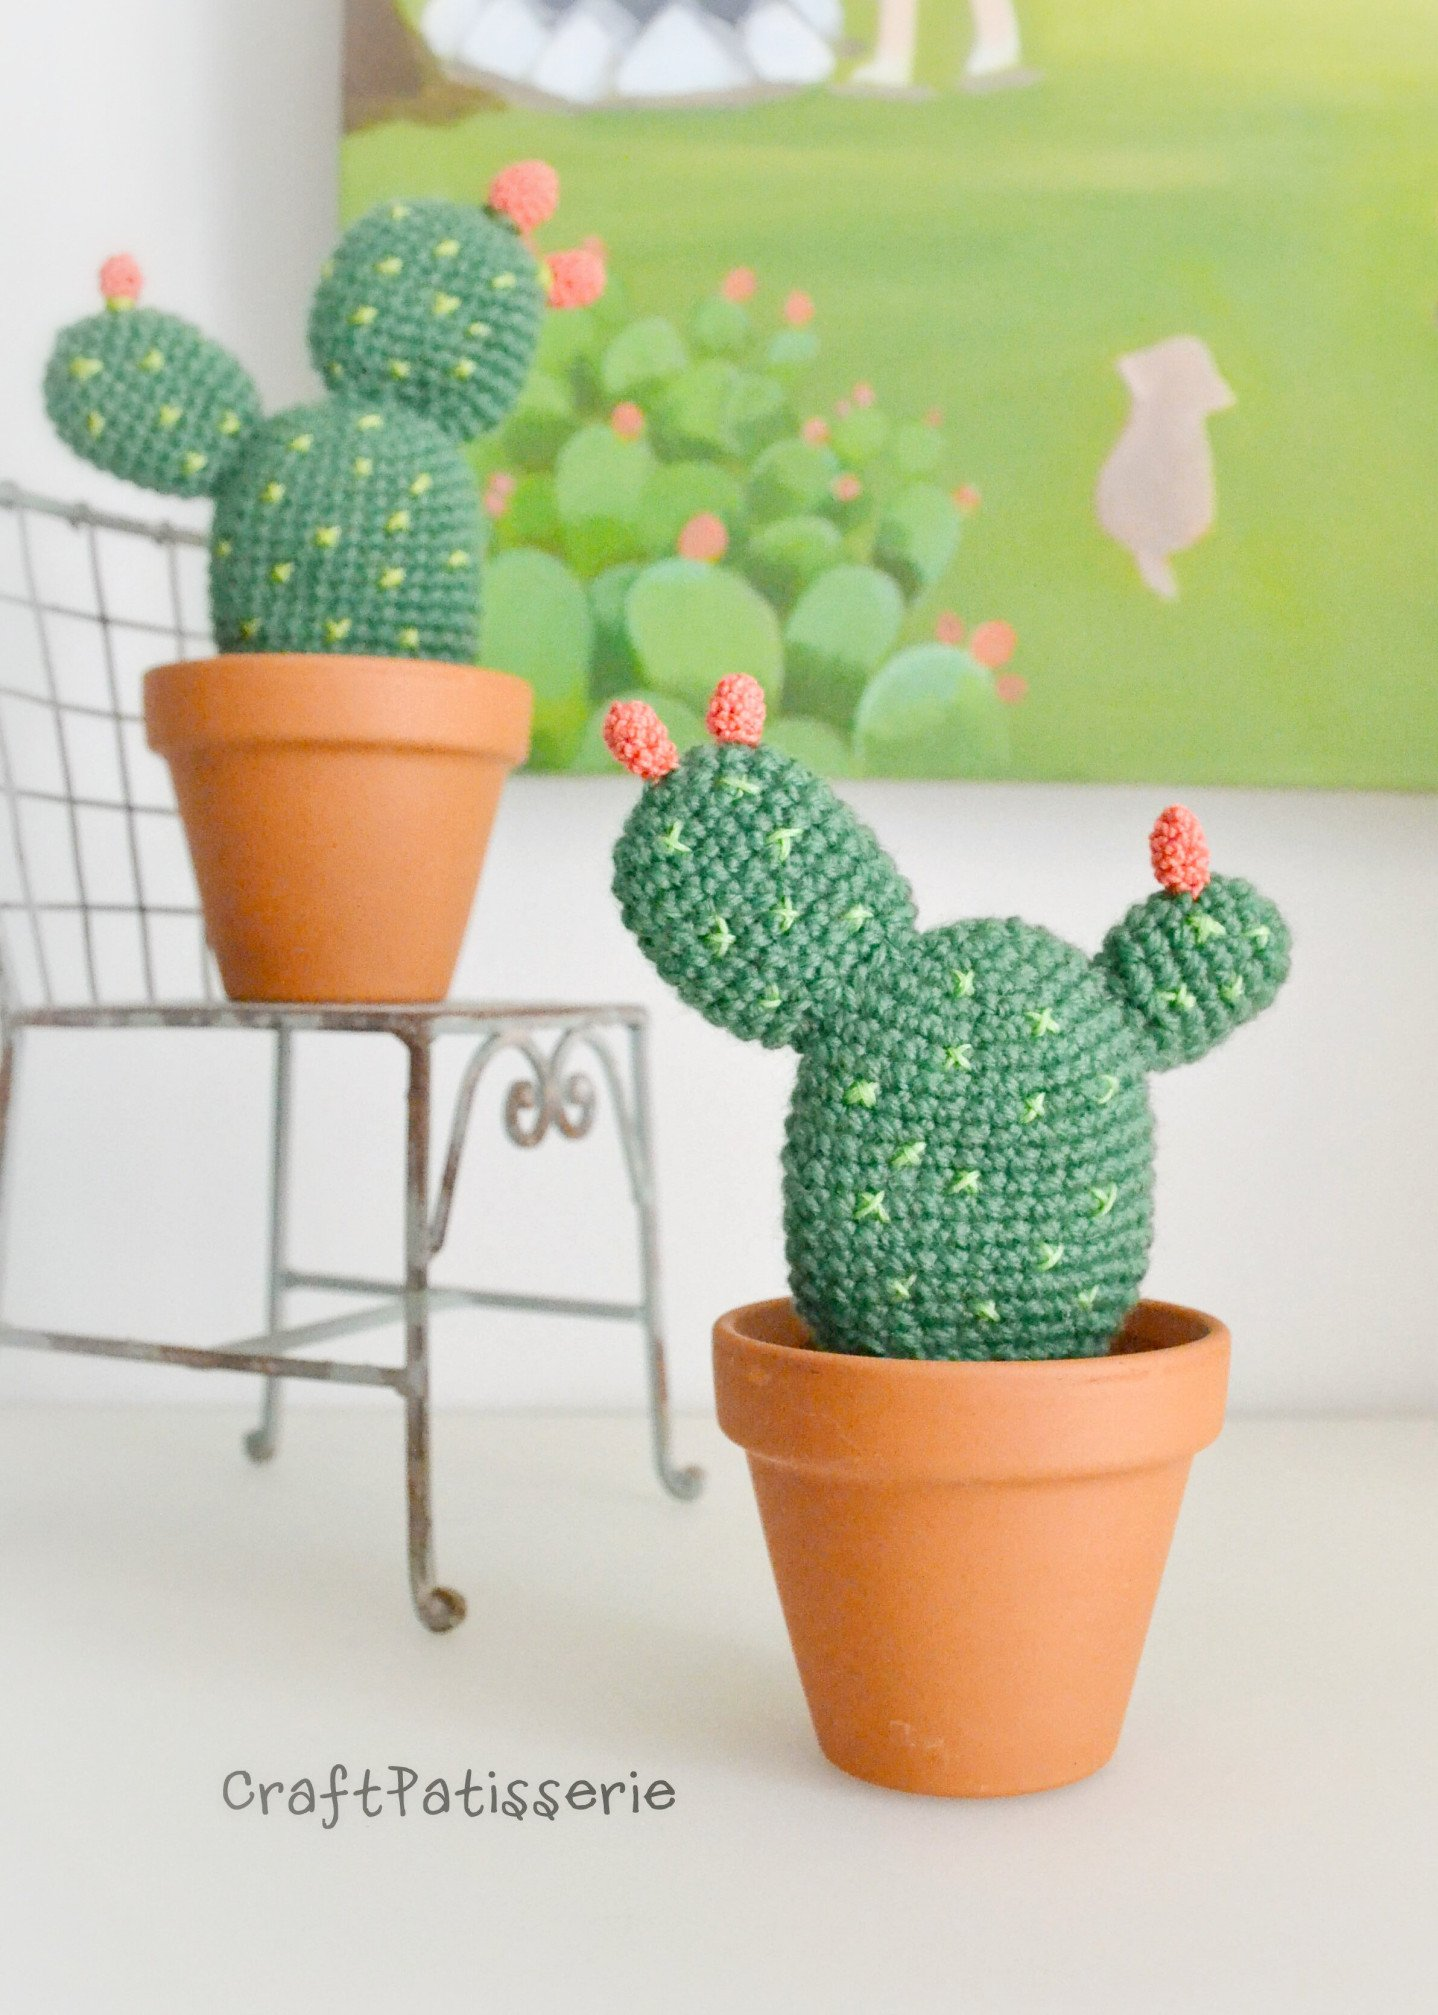 Free Crochet Pattern For Cactus : 10+ Desert Cactus Amigurumi Crochet Patterns - Look ...